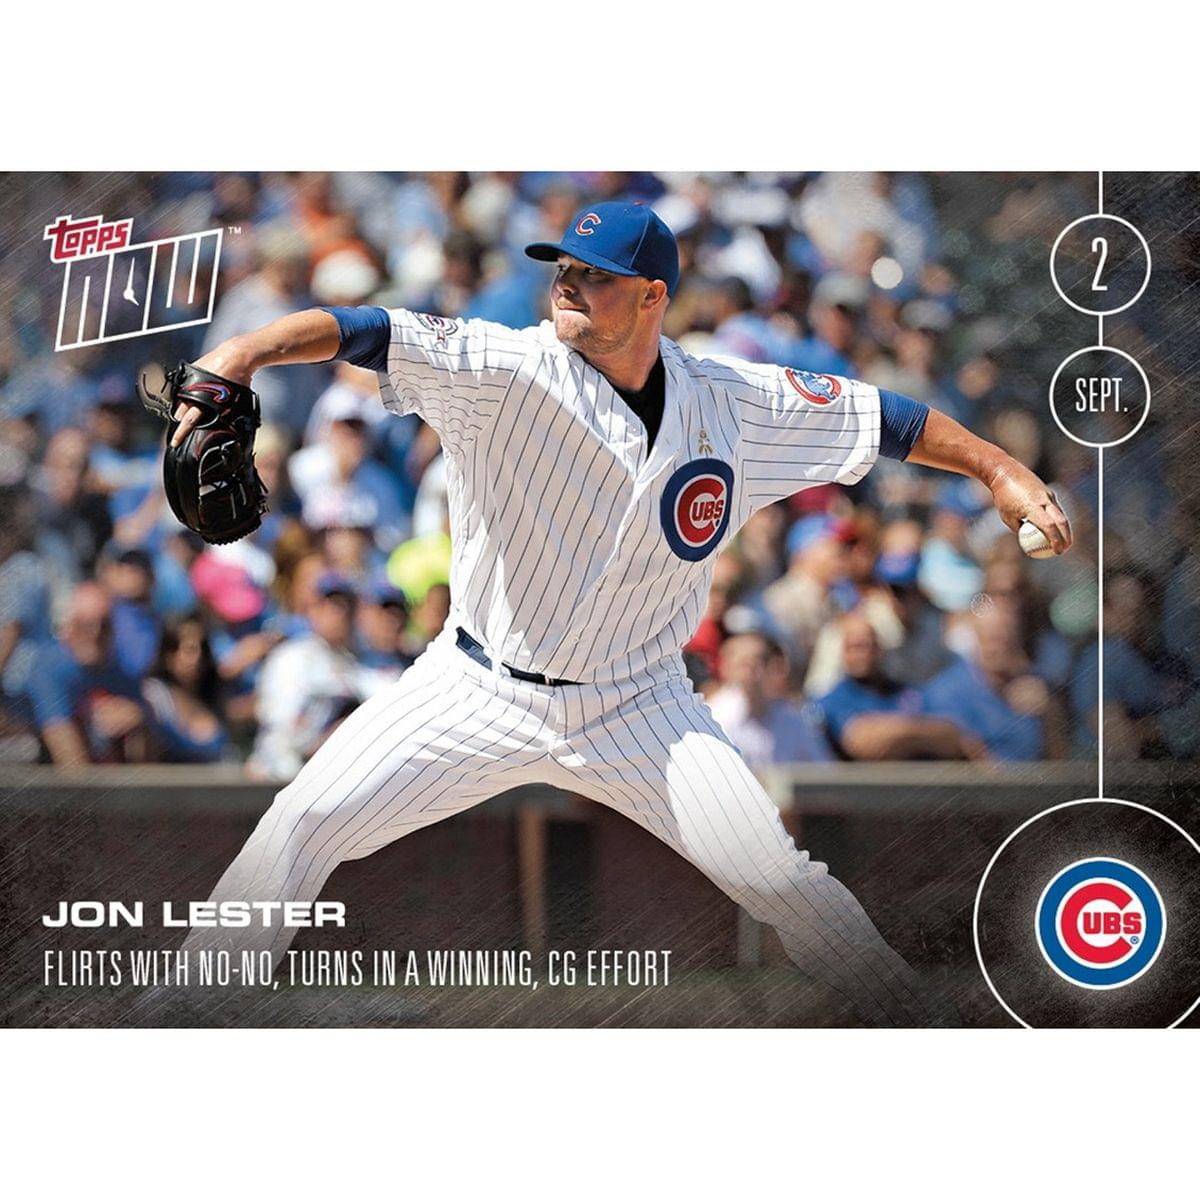 MLB Chicago Cubs Jon Lester #416 Topps NOW Trading Card